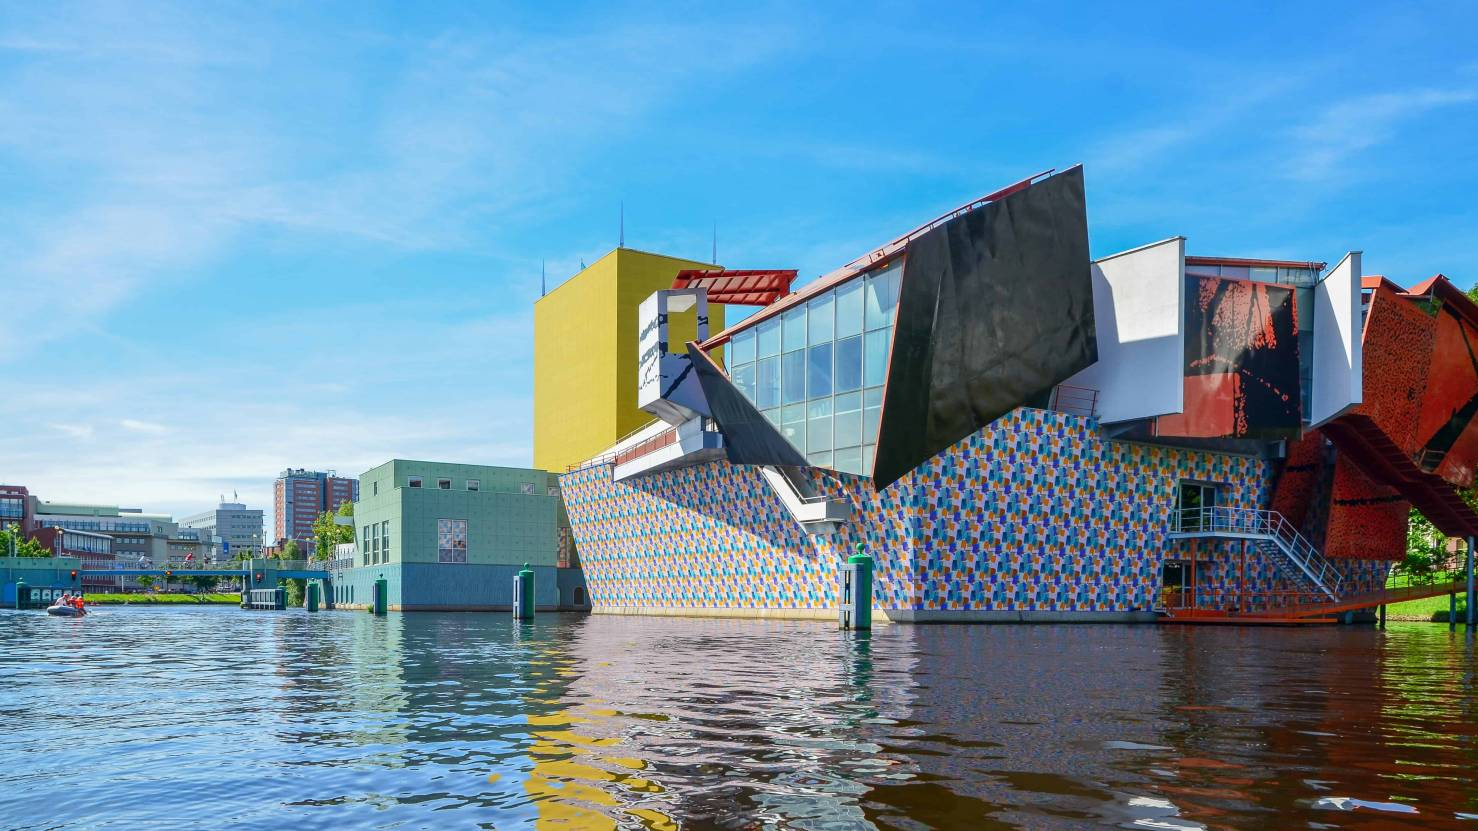 Groninger Museum in the Netherlands - Alessandro Mendini. Photo by Zachtleven.